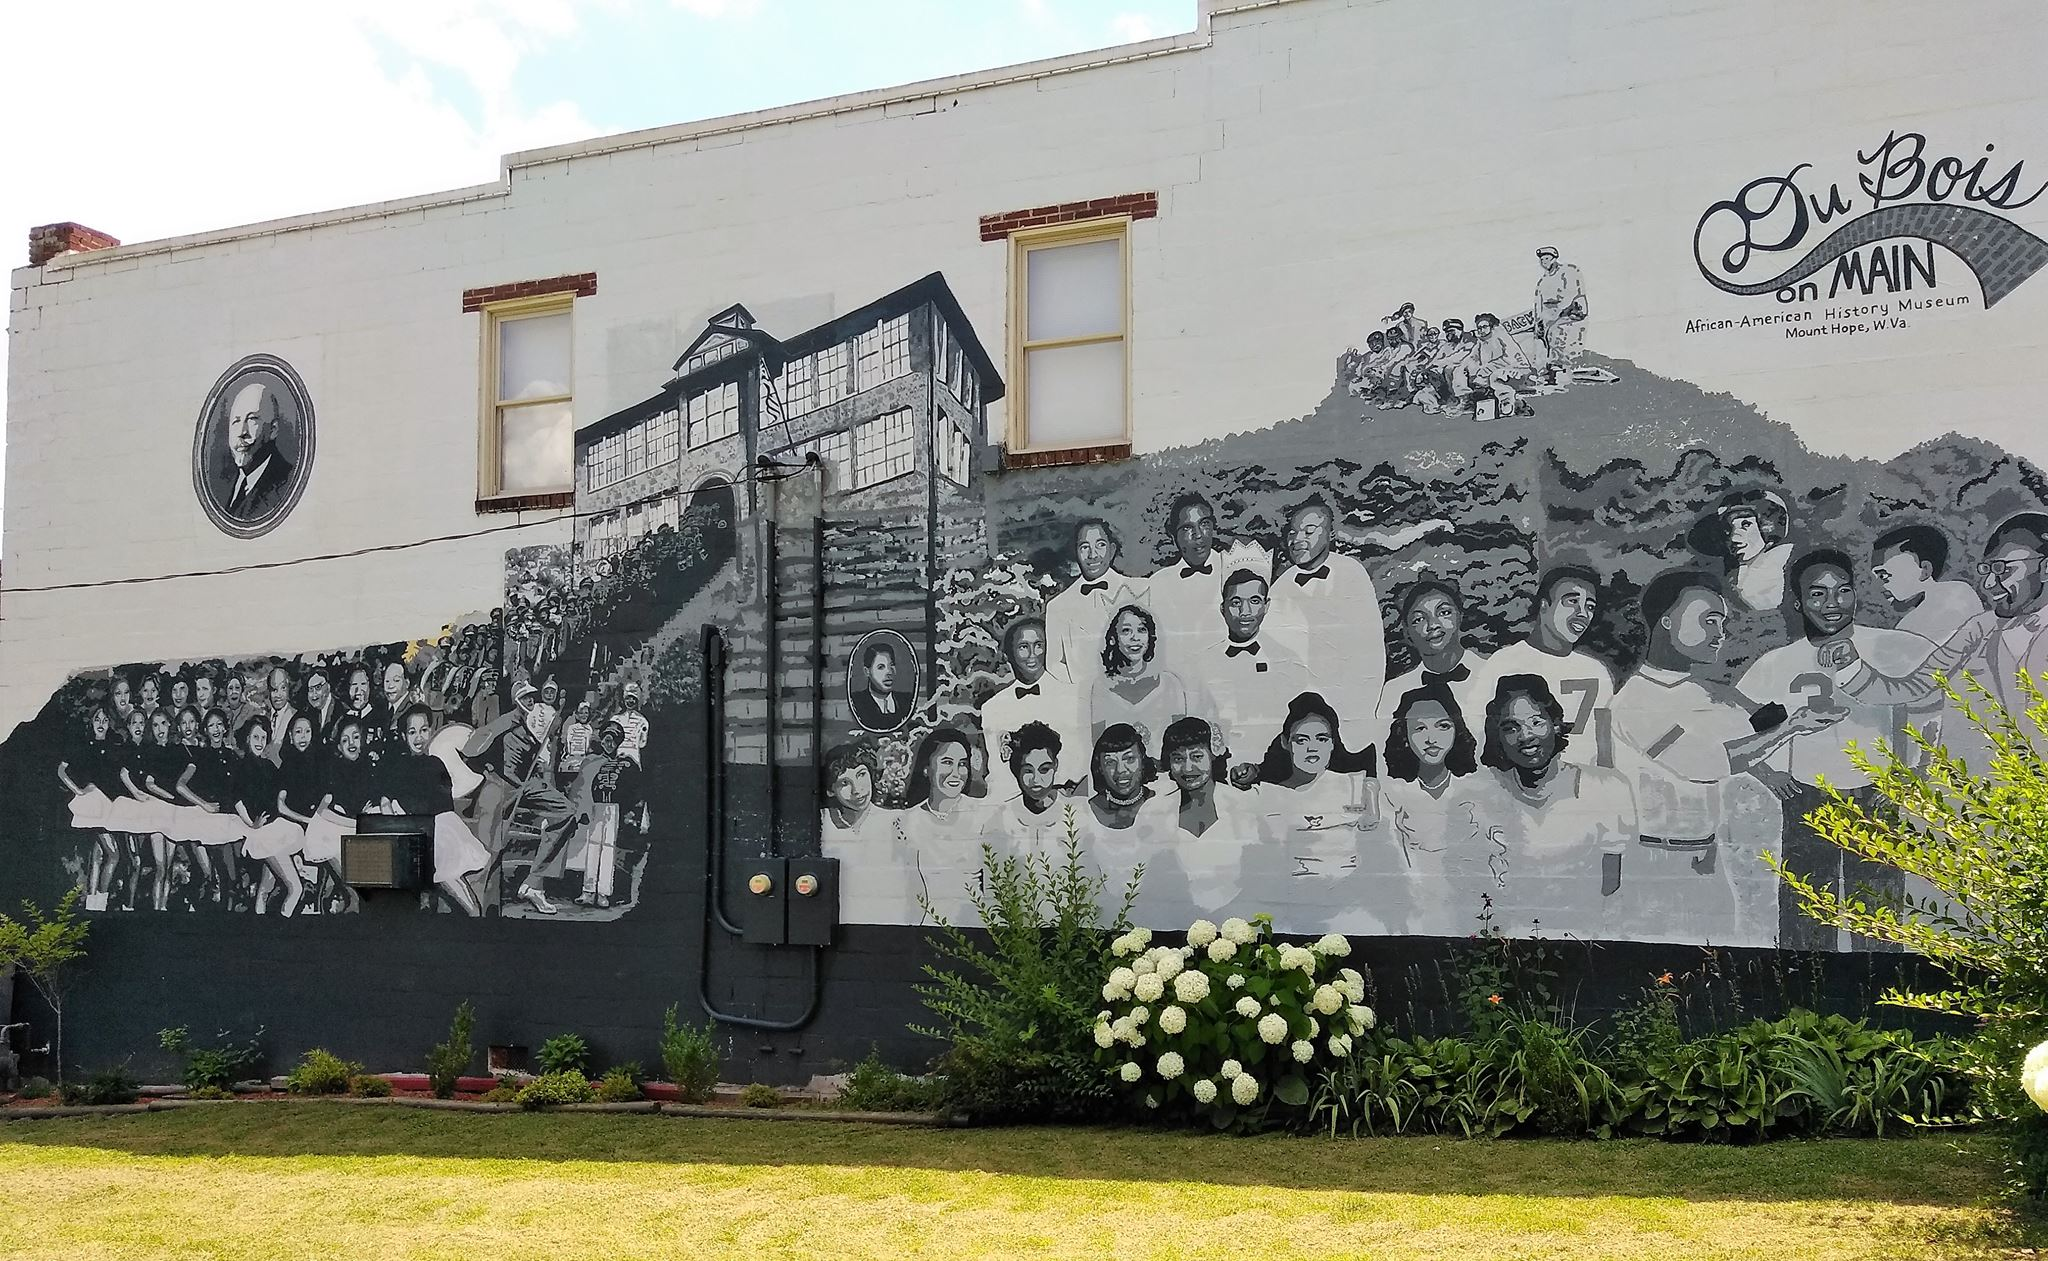 A mural on the side of the DuBois on Main Museum, in Mt. Hope, West Virginia.